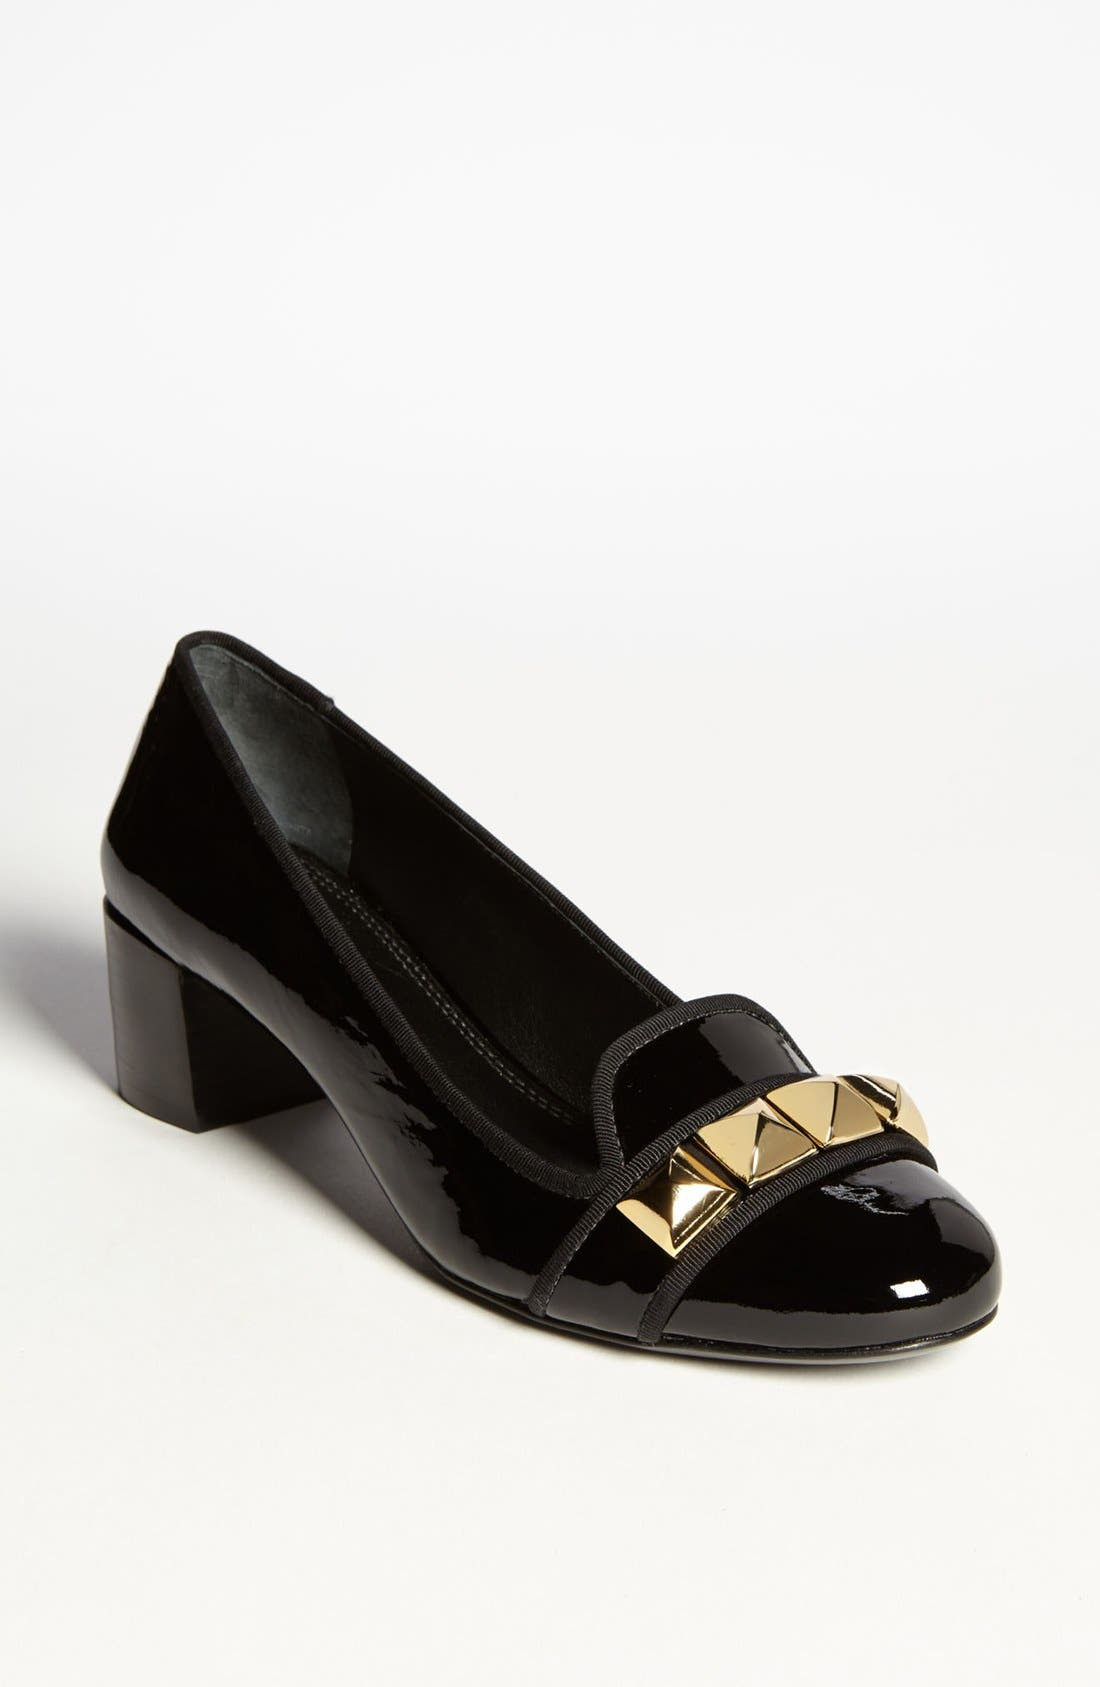 Alternate Image 1 Selected - Tory Burch 'Asher' Pump (Nordstrom Exclusive)